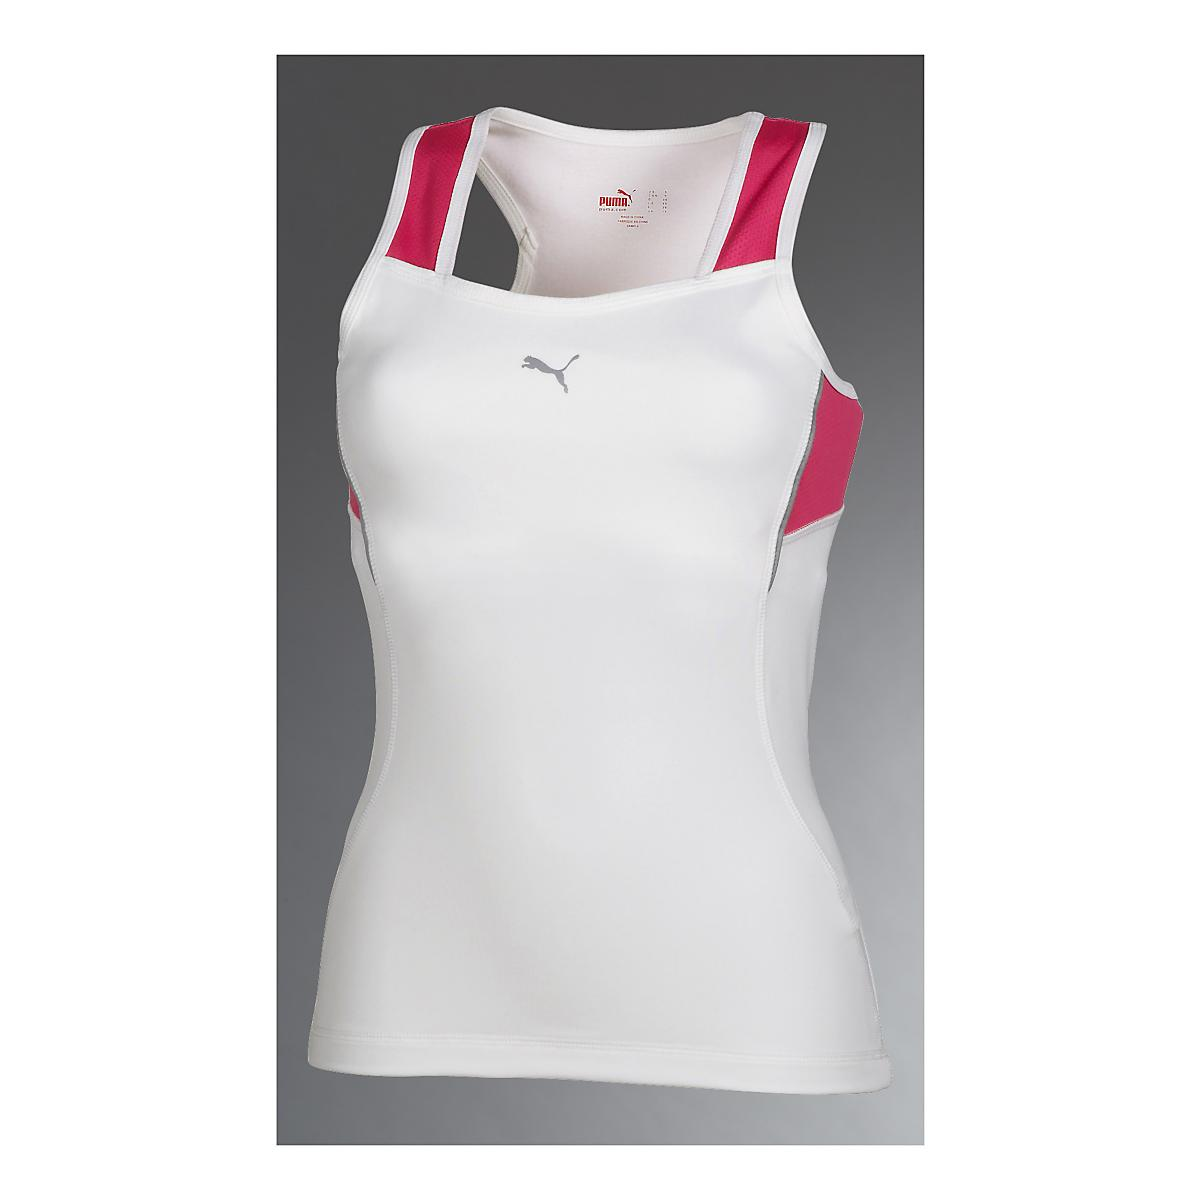 Womens PUMA Reflective Fitness Sport Top Bras at Road ...